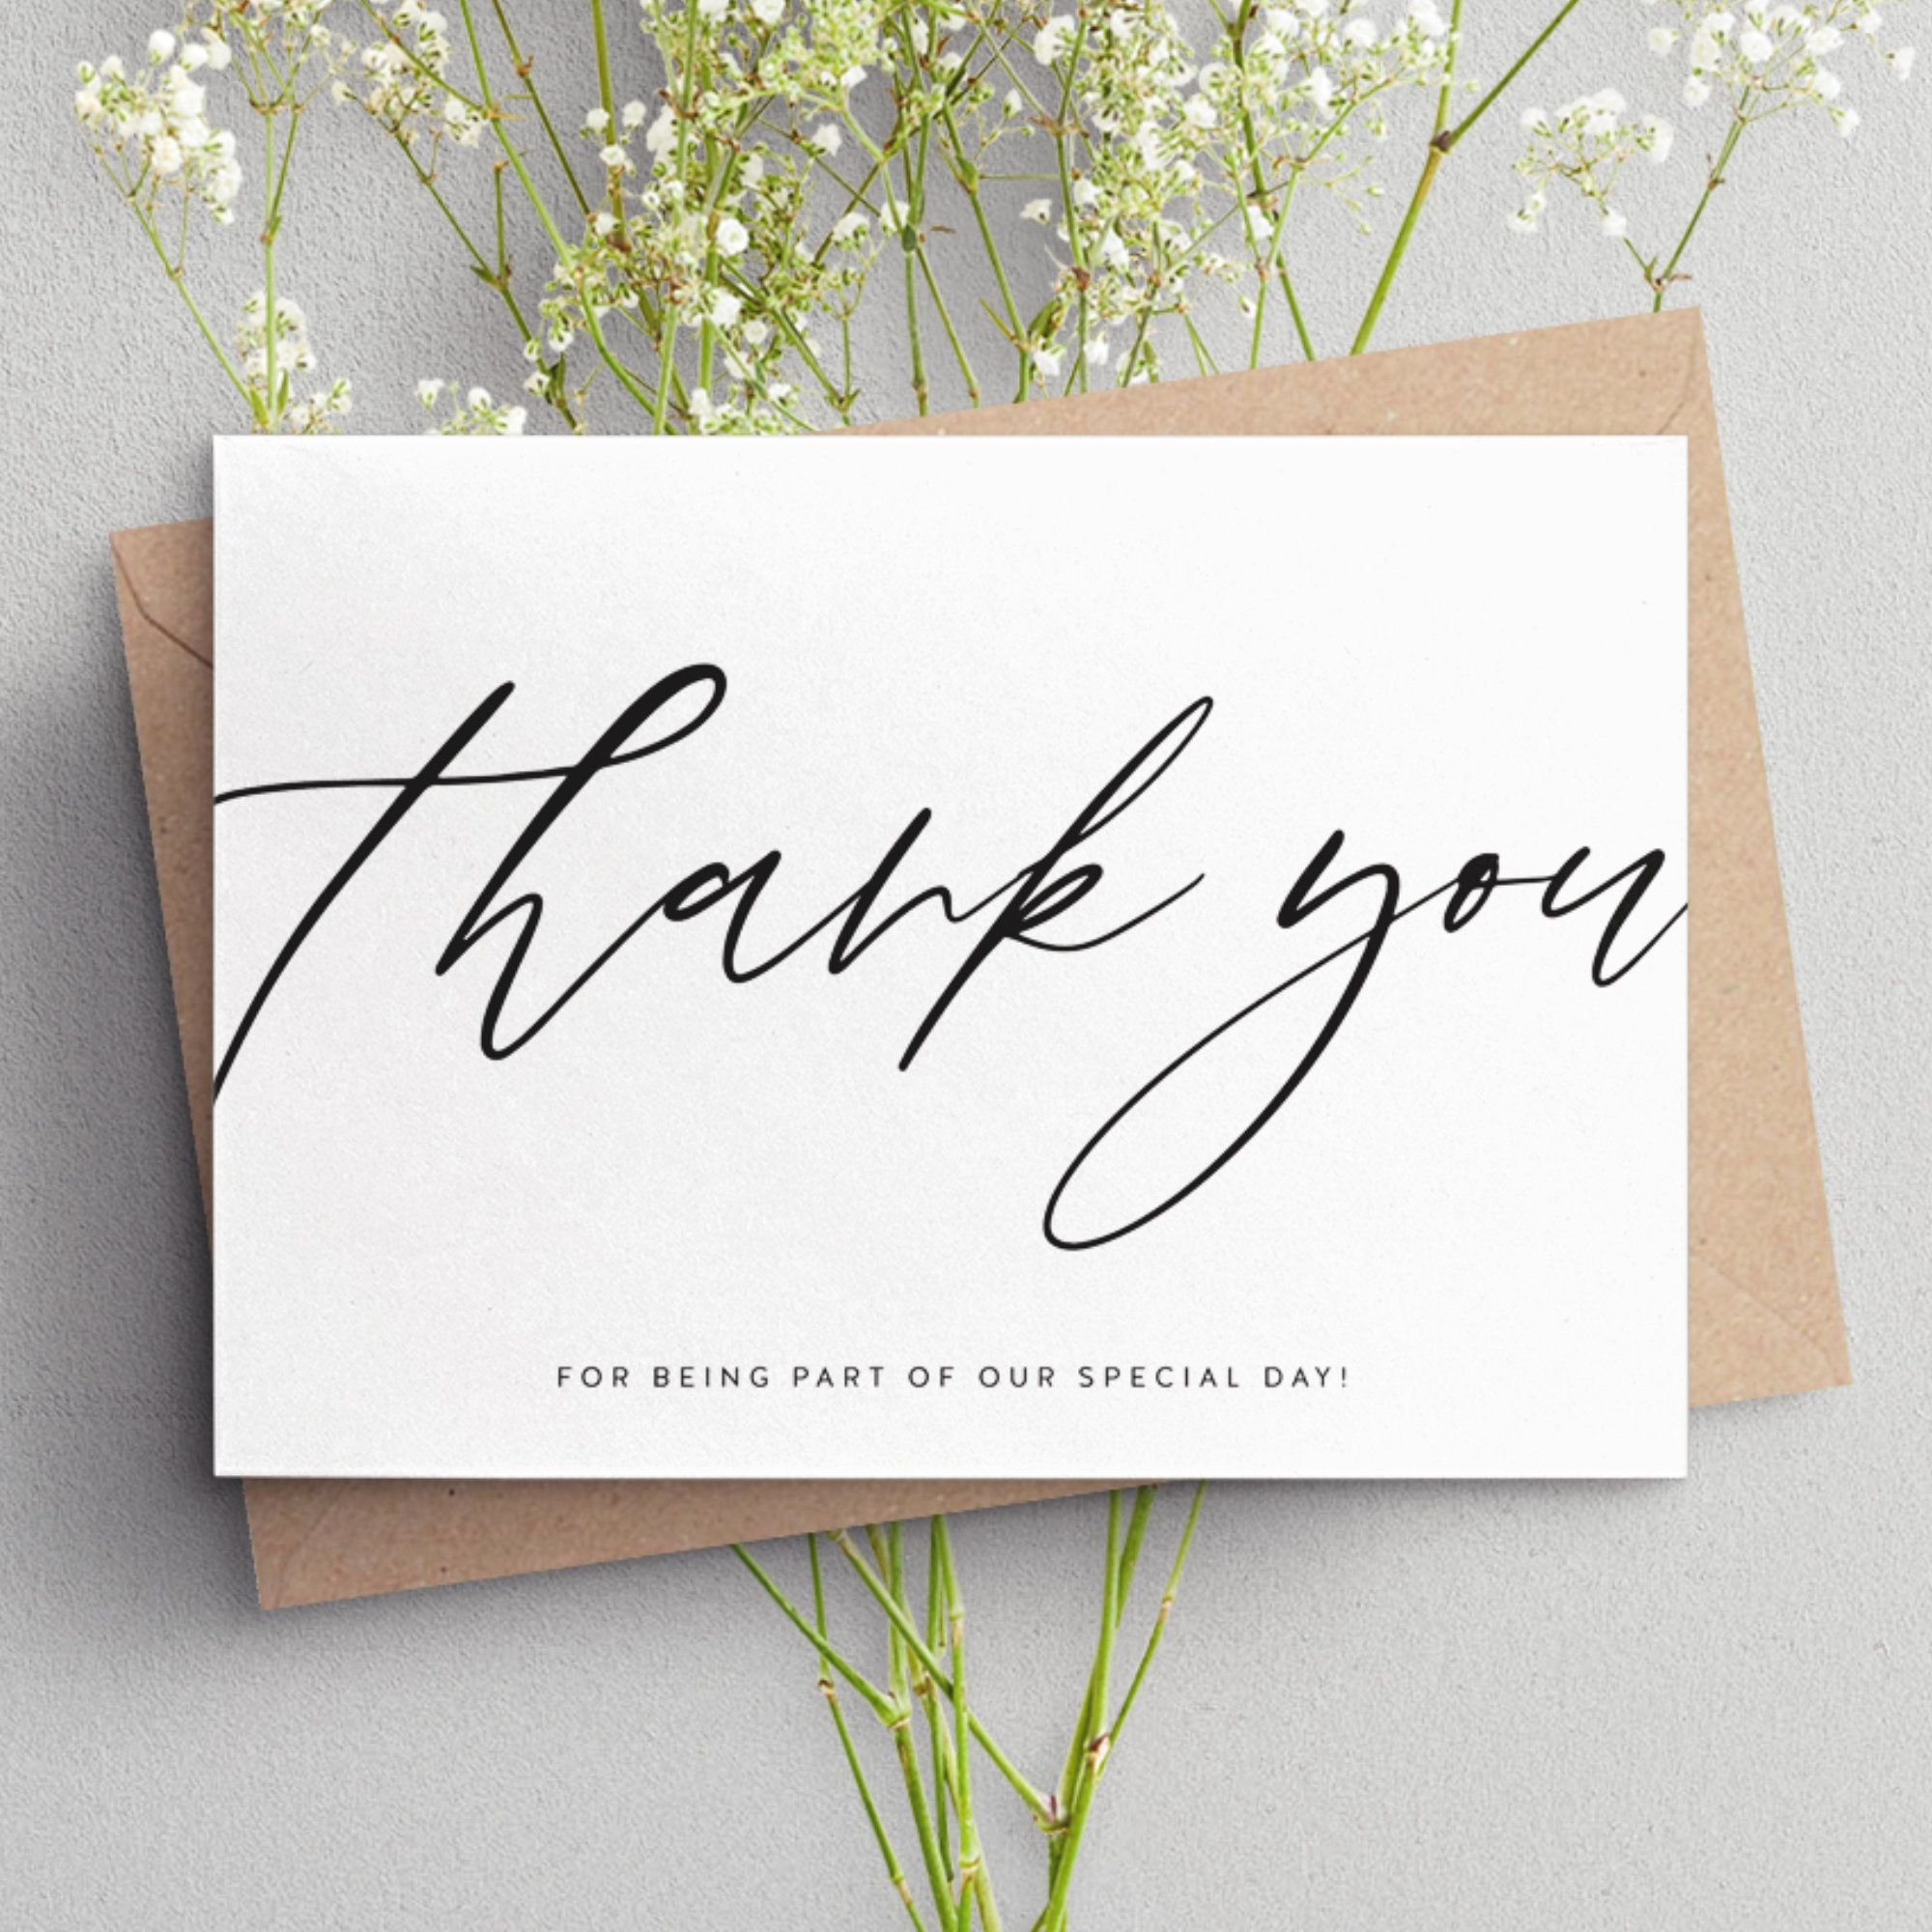 Wedding Thank You Cards Thank You Cards Personalised Thank Etsy Thank You Card Design Personalized Thank You Cards Thank You Cards